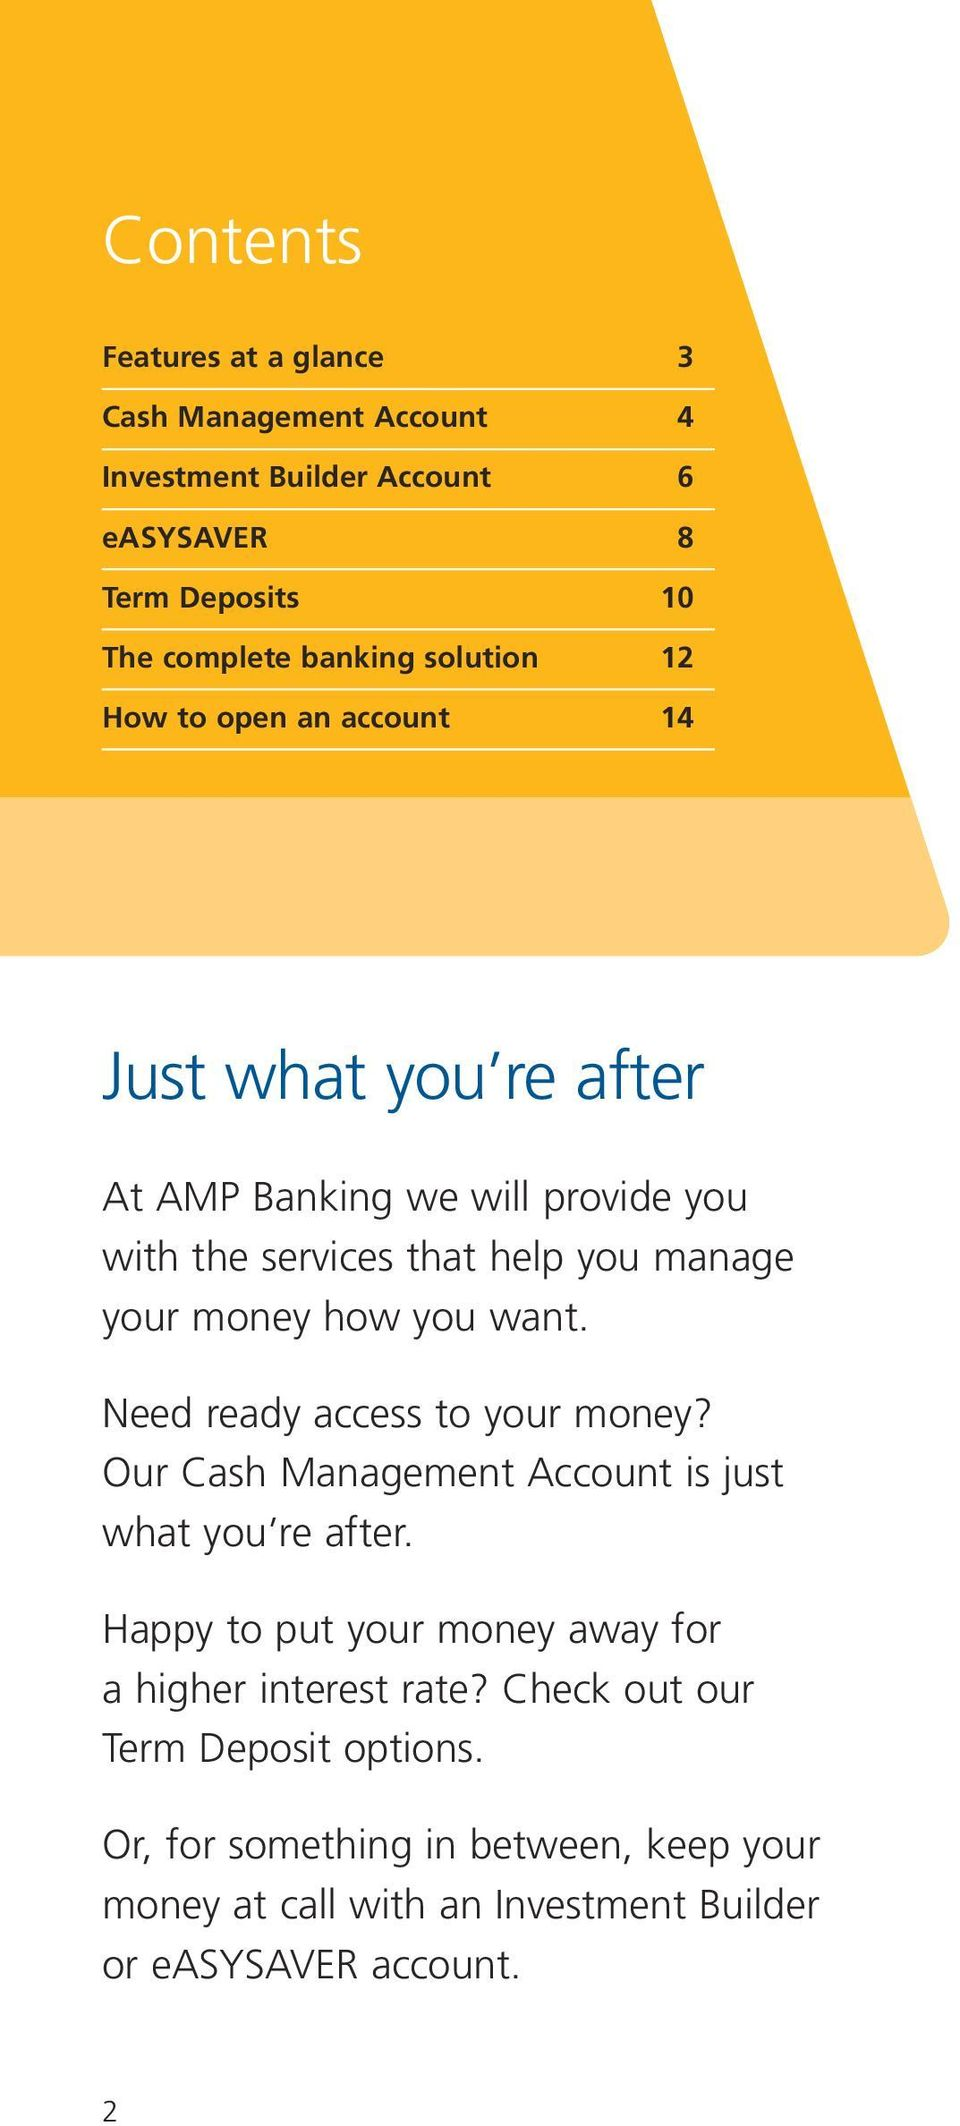 want. Need ready access to your money? Our Cash Management Account is just what you re after.